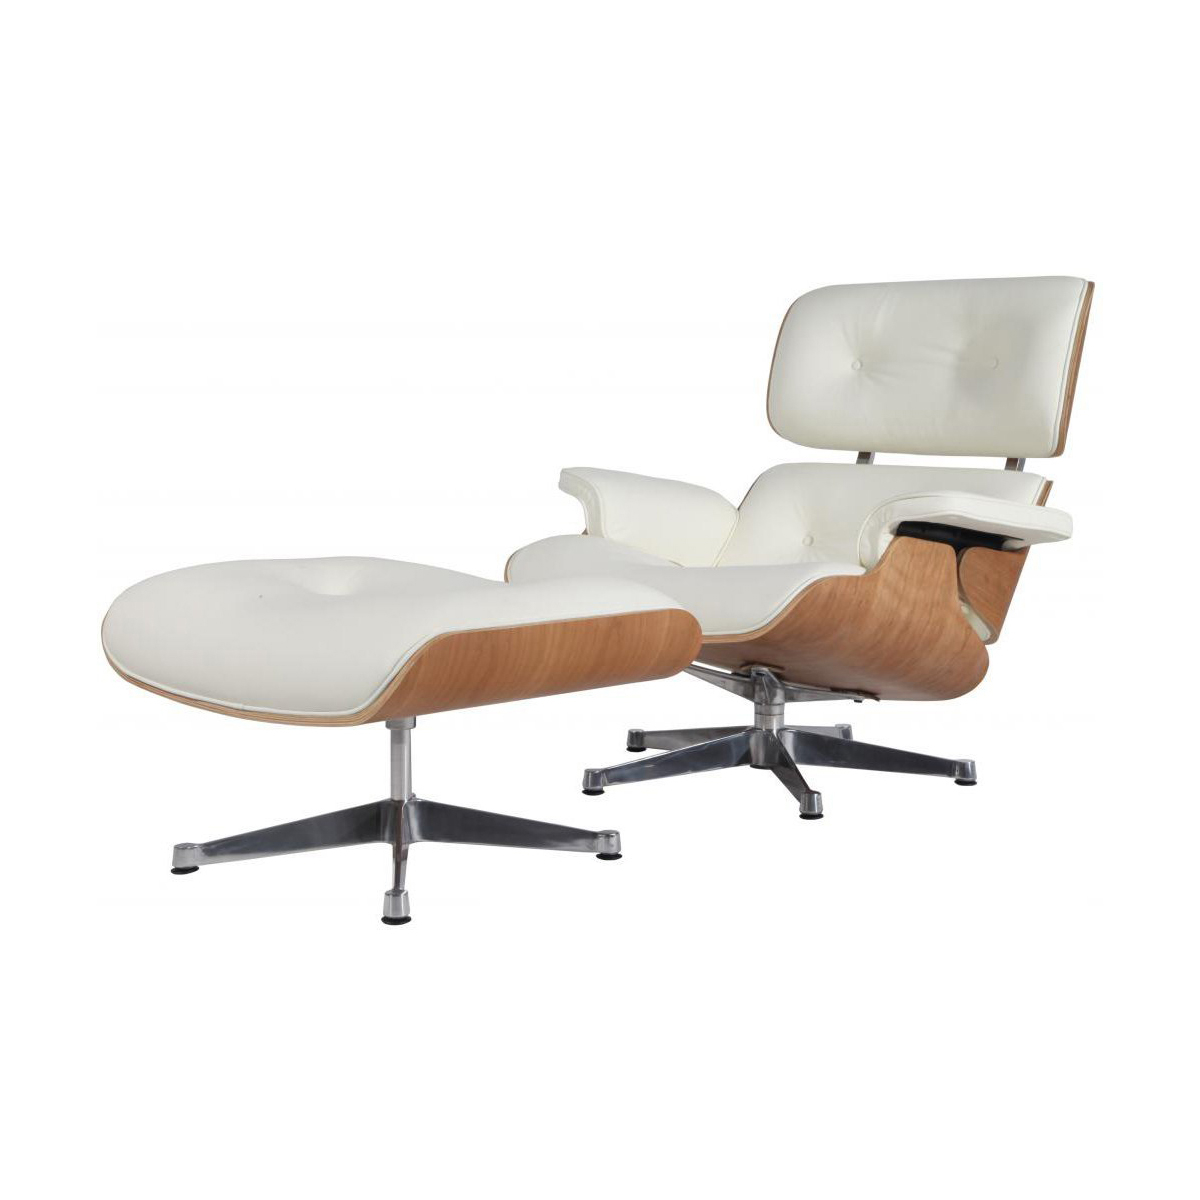 eMod - Mid Century Eames Style Lounge Chair & Ottoman Replica Italian Leather White Ash